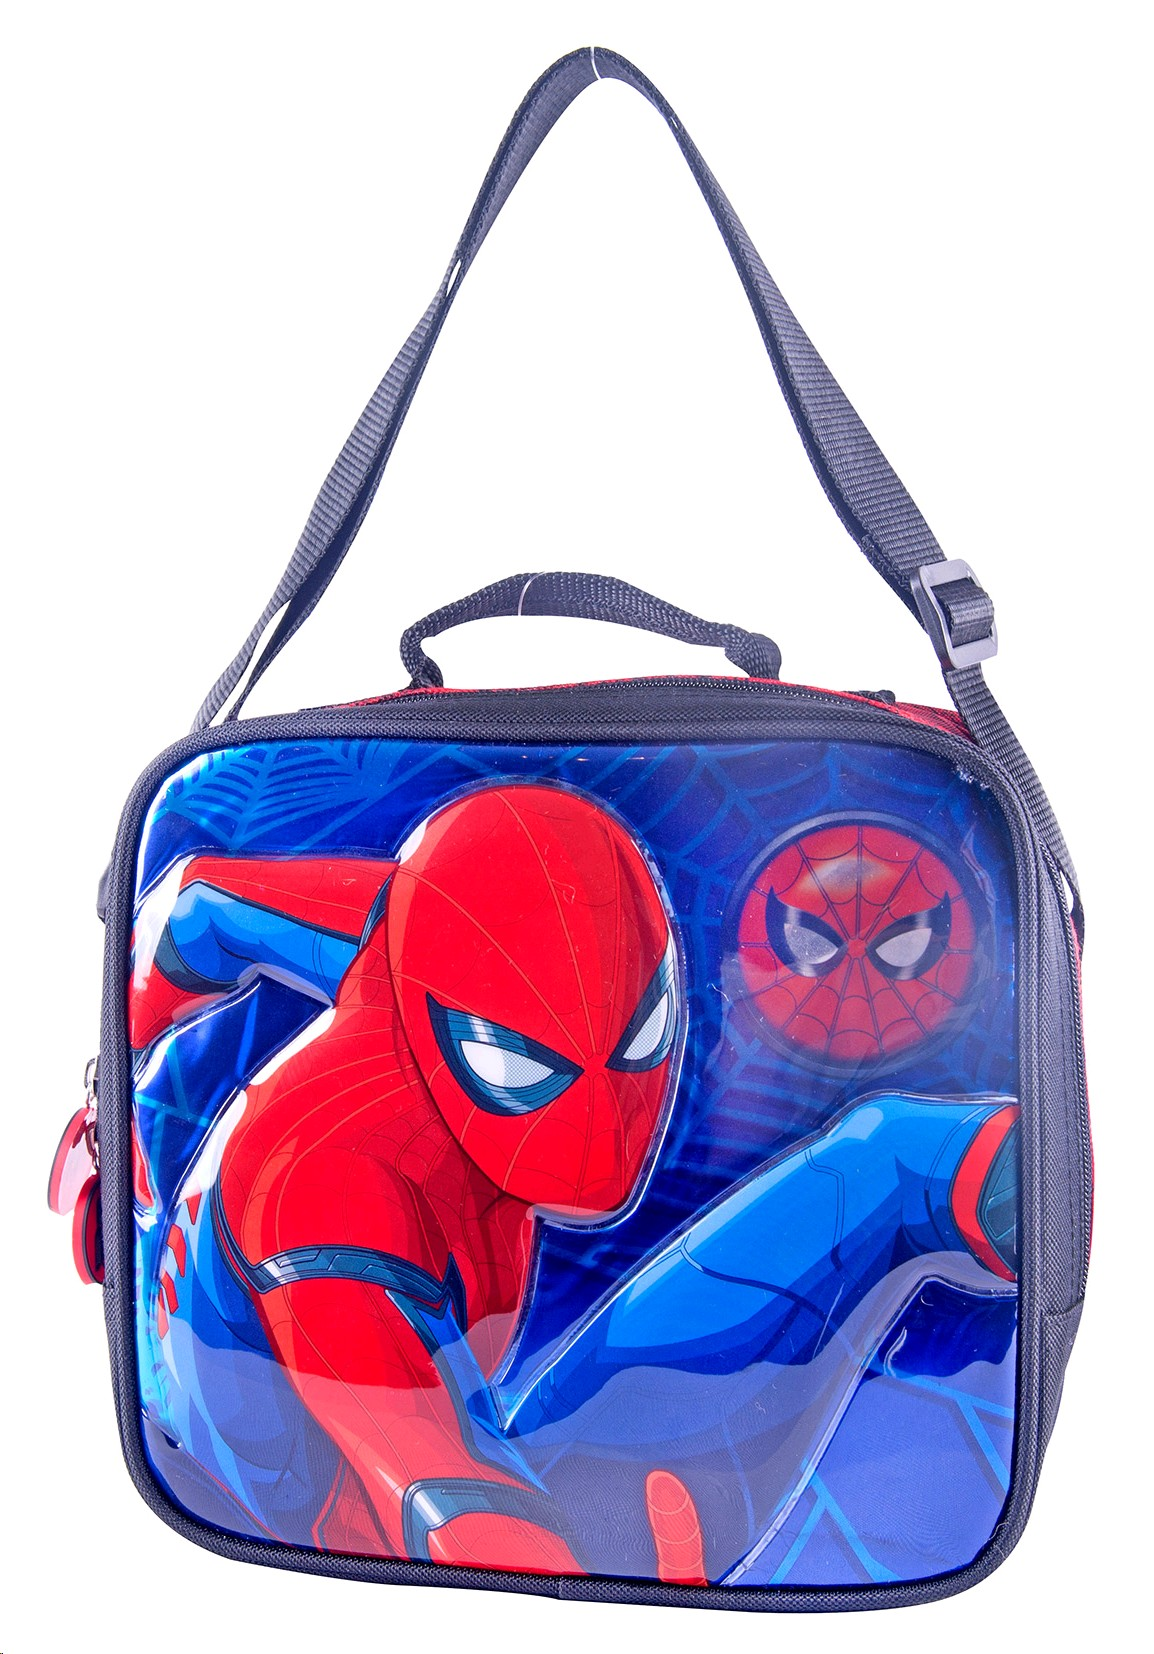 spiderman-beslenme-cantasi-88985